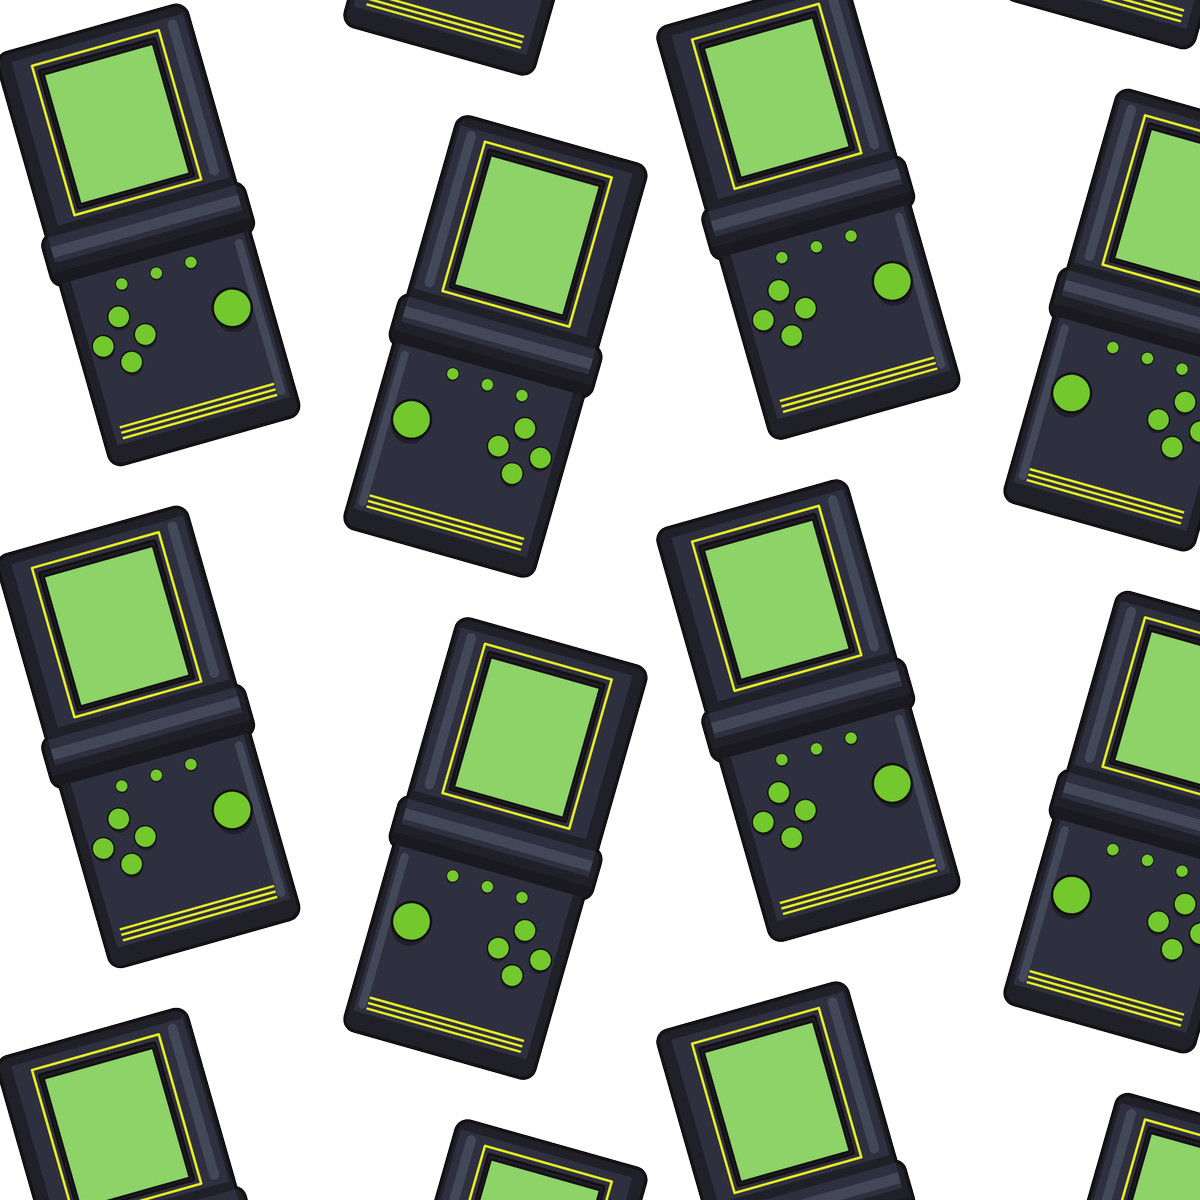 Browse our awesome #PopArt Retro Handheld Console themed collection in the @Tekstalgia Store: #tshirts, #hoodies, #homeware, #cushions, #duvets, #iphoneaccessories, #wallart, #postcards, #stickers, #stationary, #coasters, #pillows, #socks and much more https://rdbl.co/3ghjjkVpic.twitter.com/bTFhtzJPfp